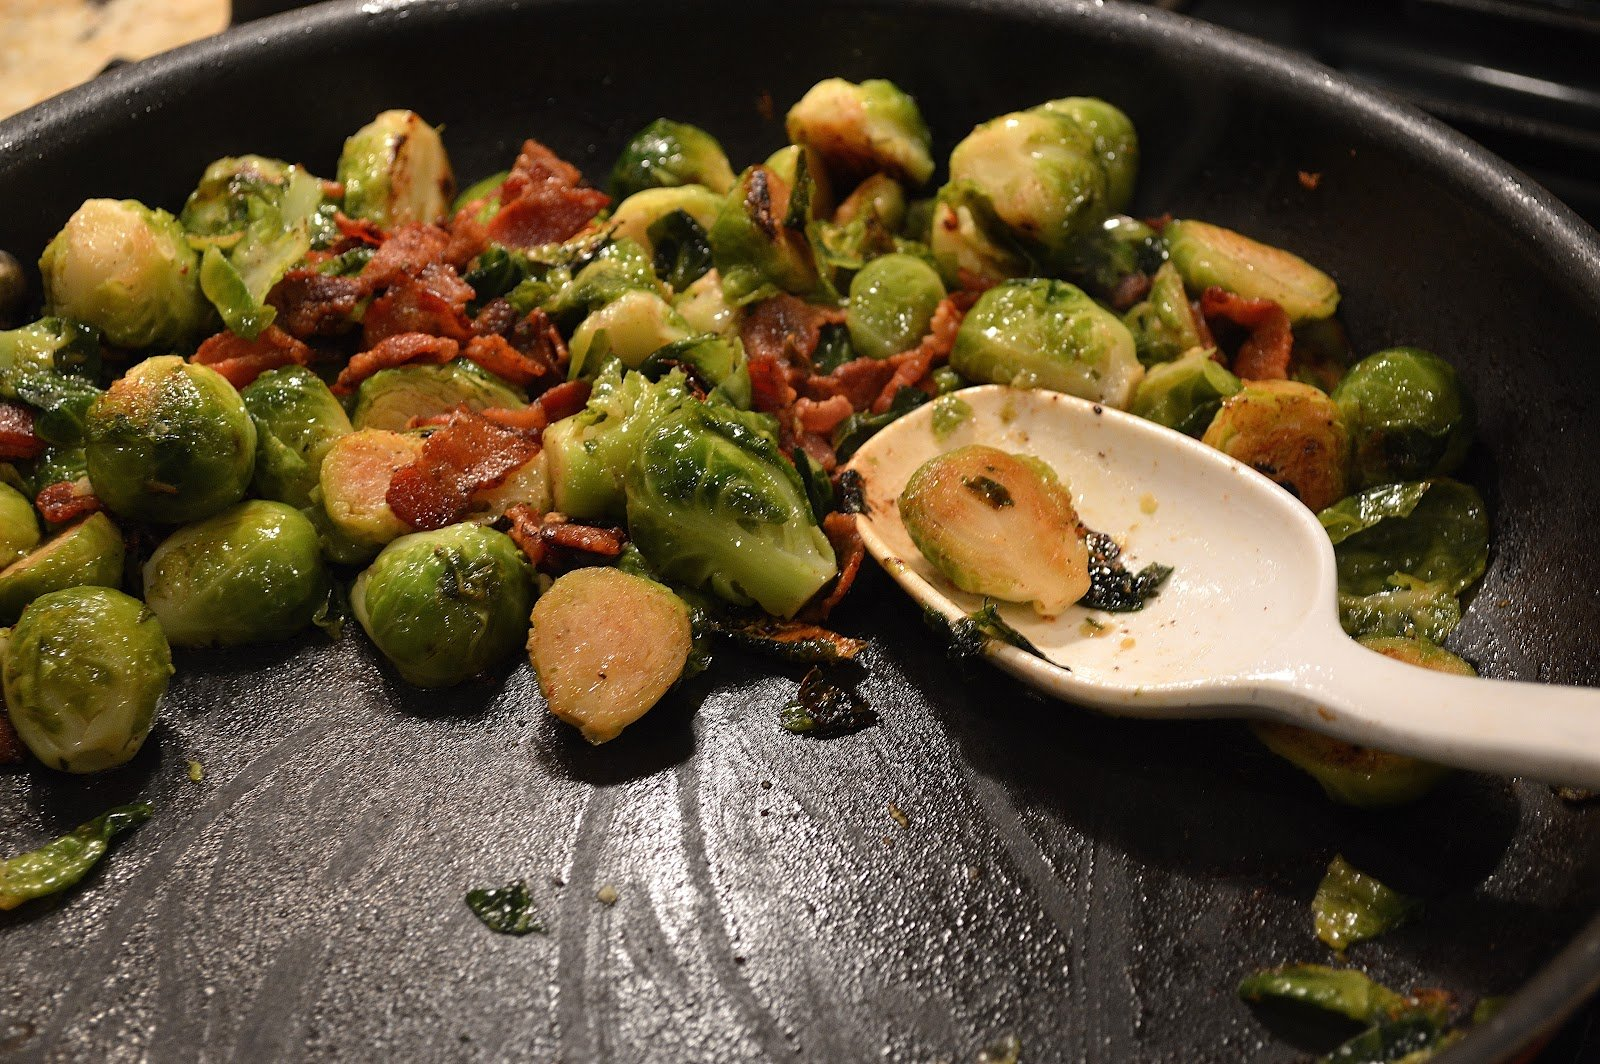 Sauteed Brussels Sprouts with Bacon - Savory Experiments